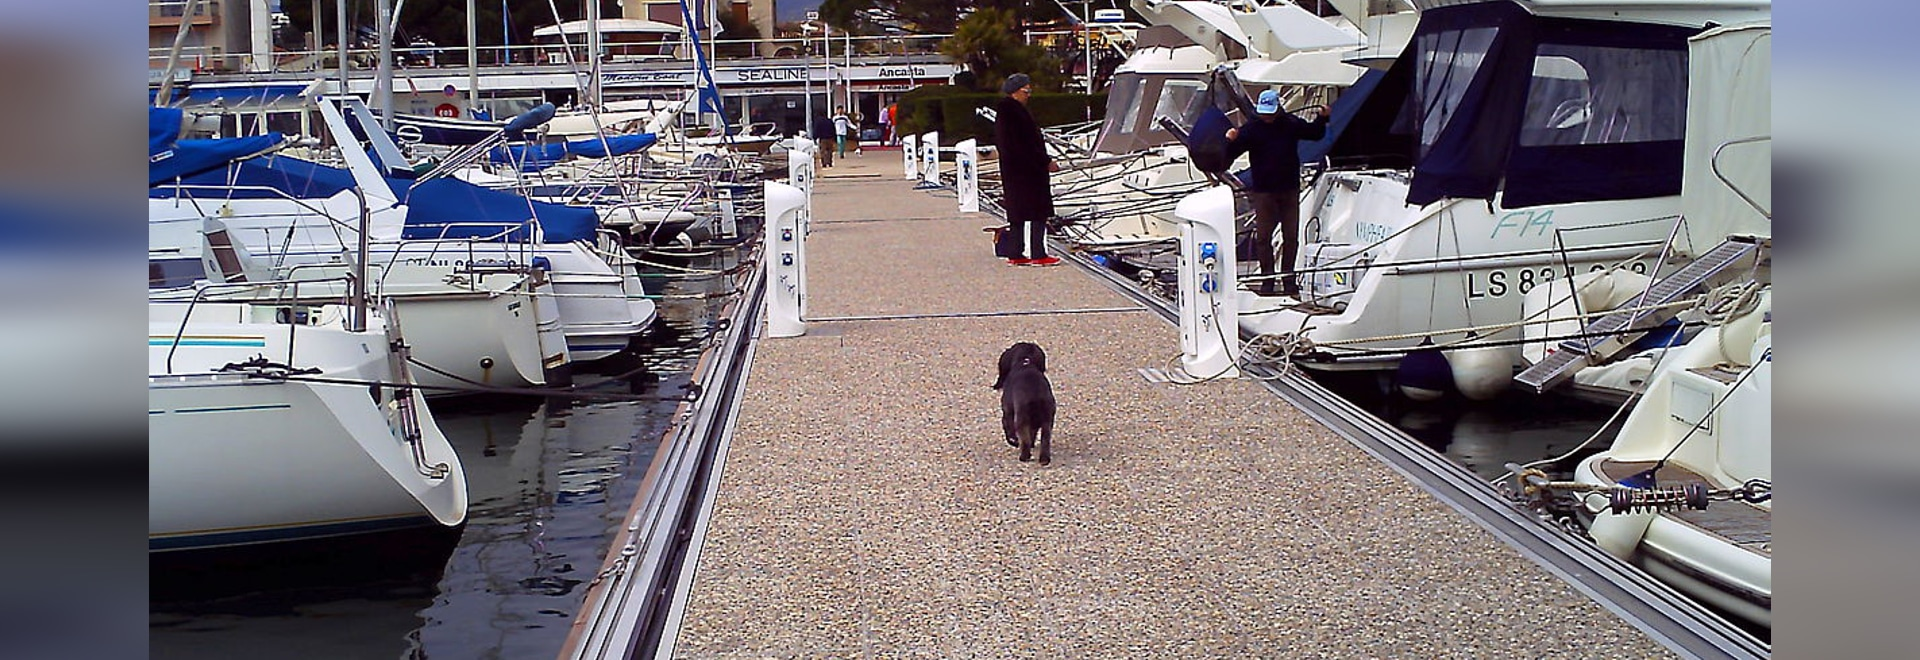 Fixed pontoon Poralu covered with concrete slabs